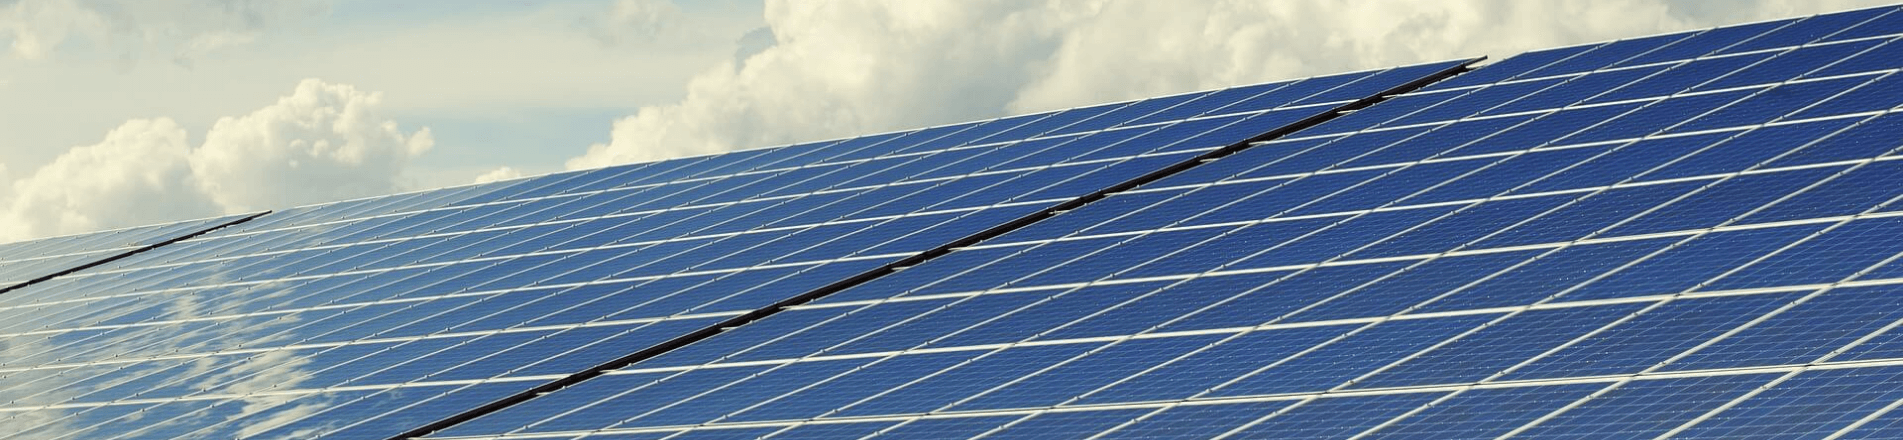 How To Improve Solar Panel Efficiency Evergreen Energy